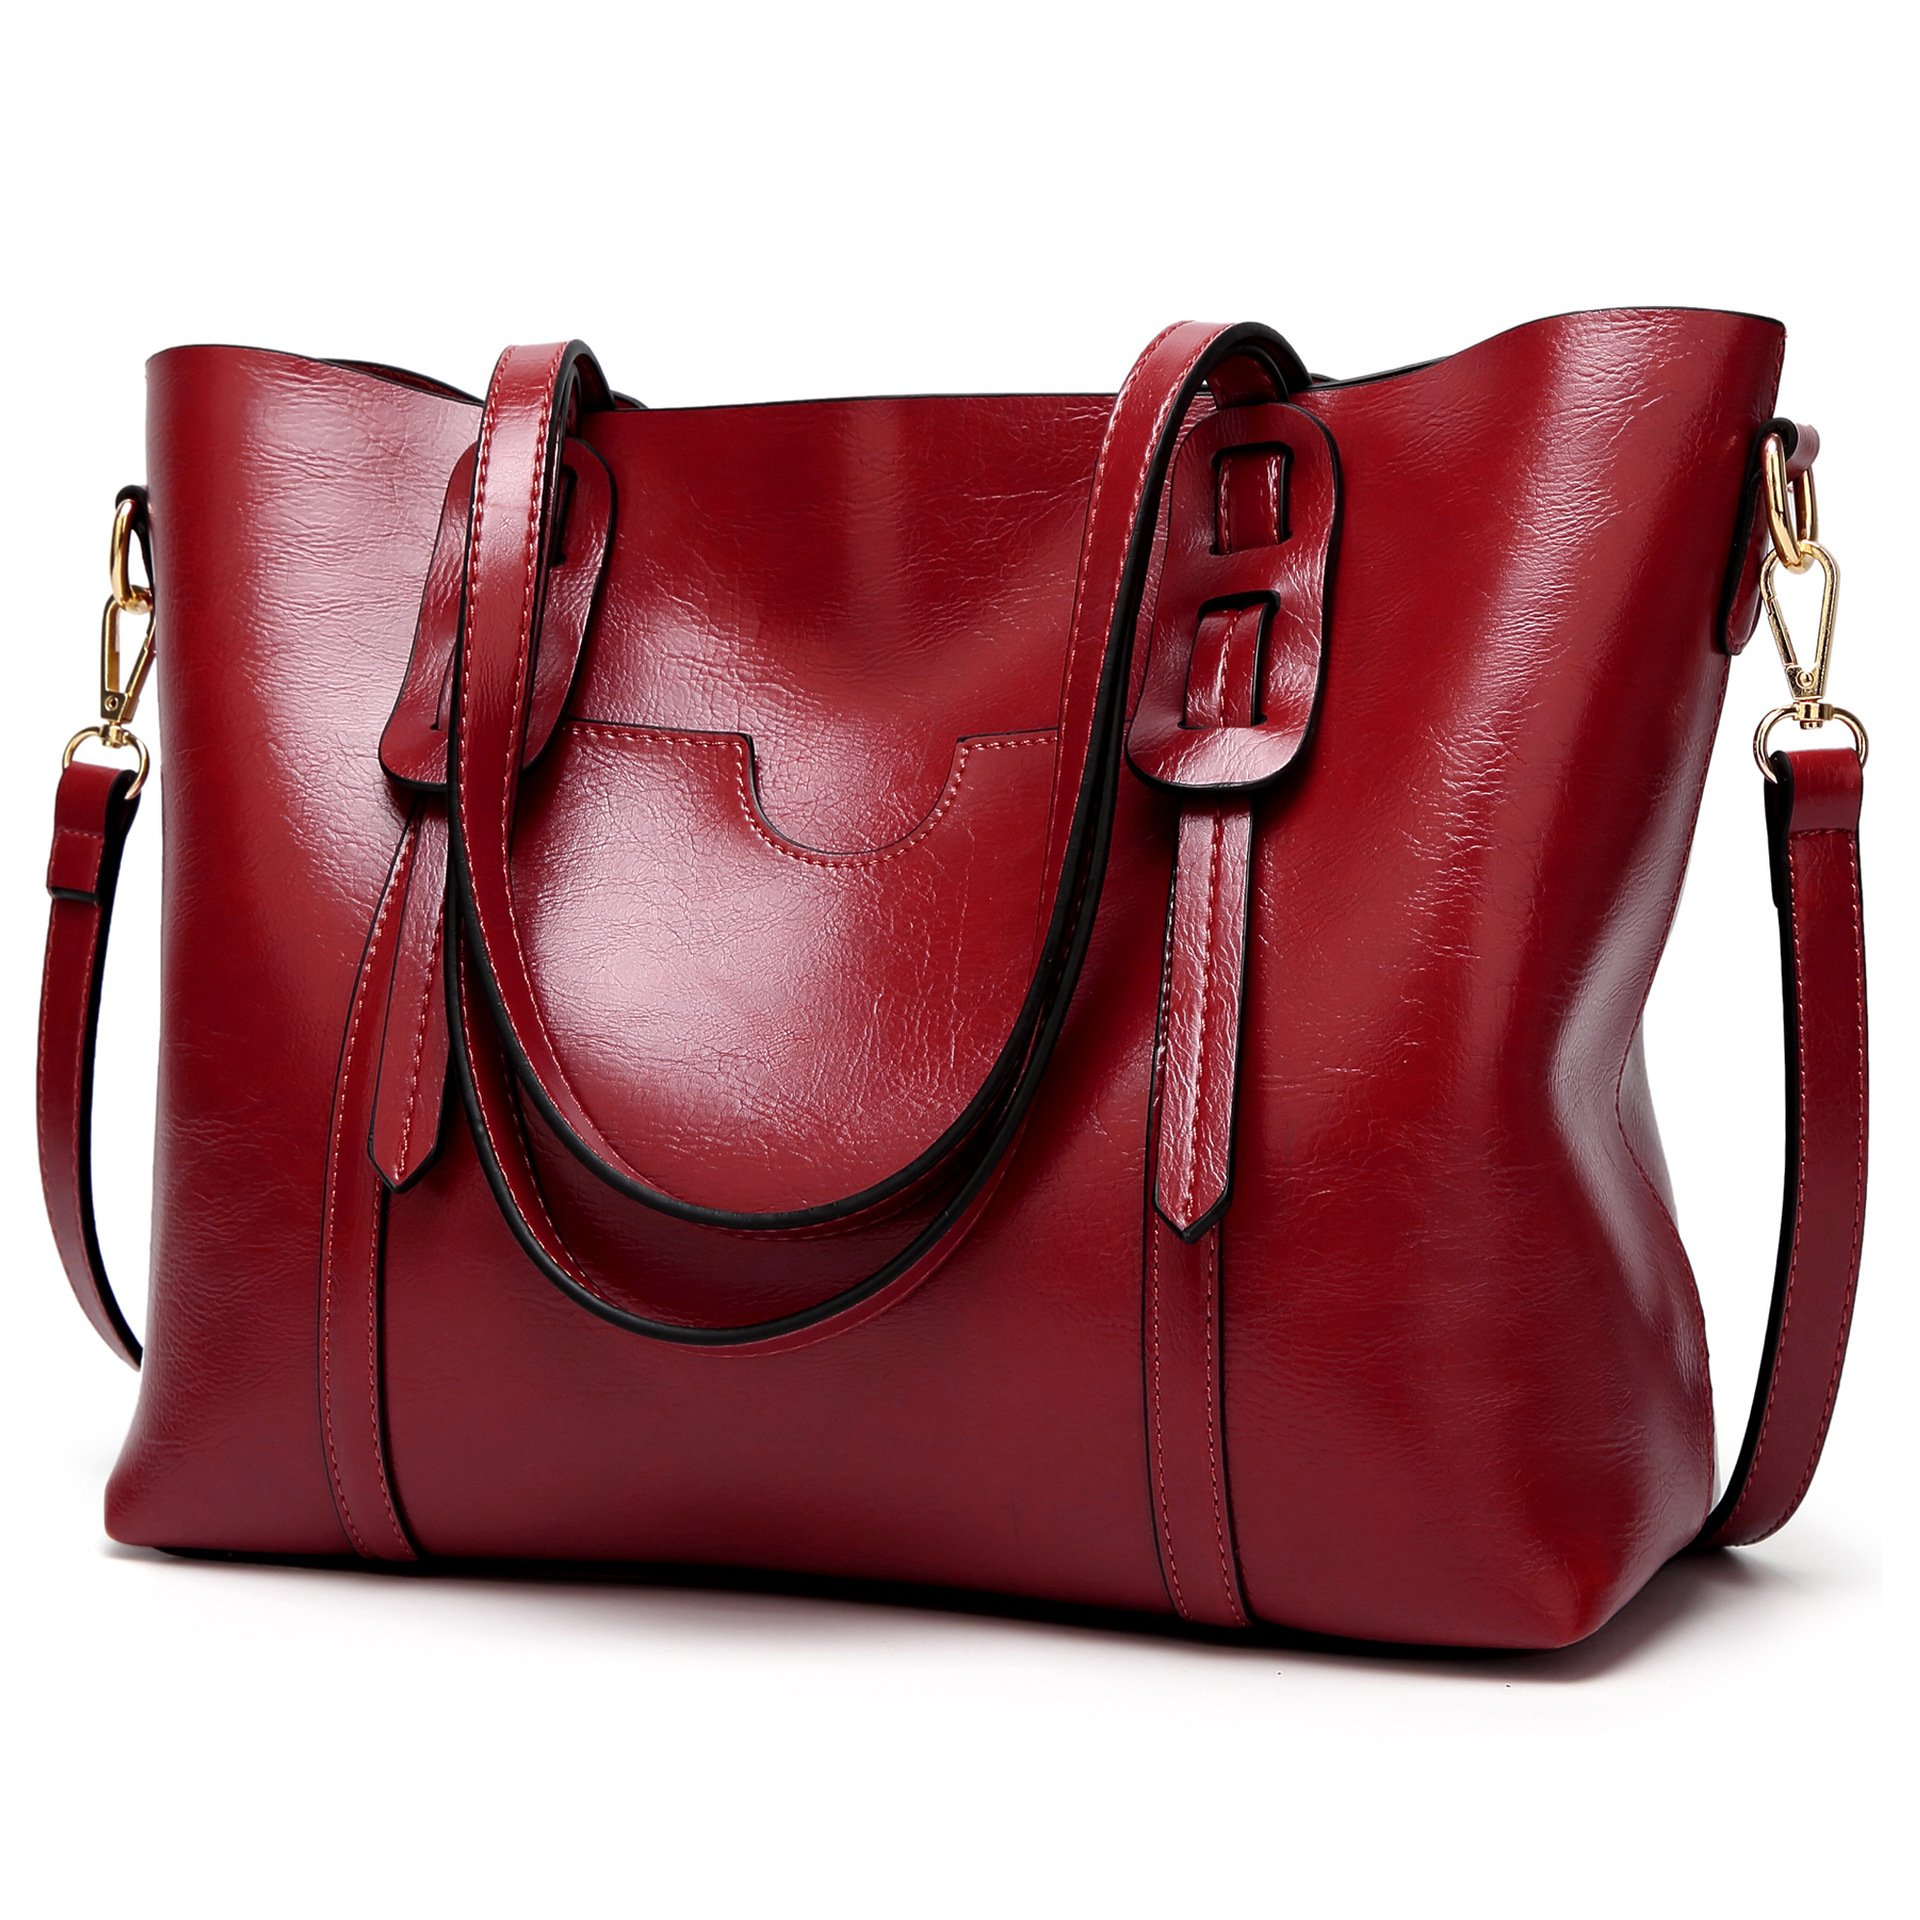 LoZoDo Women Top Handle Satchel Handbags Shoulder Bag Tote Purse (Red2)